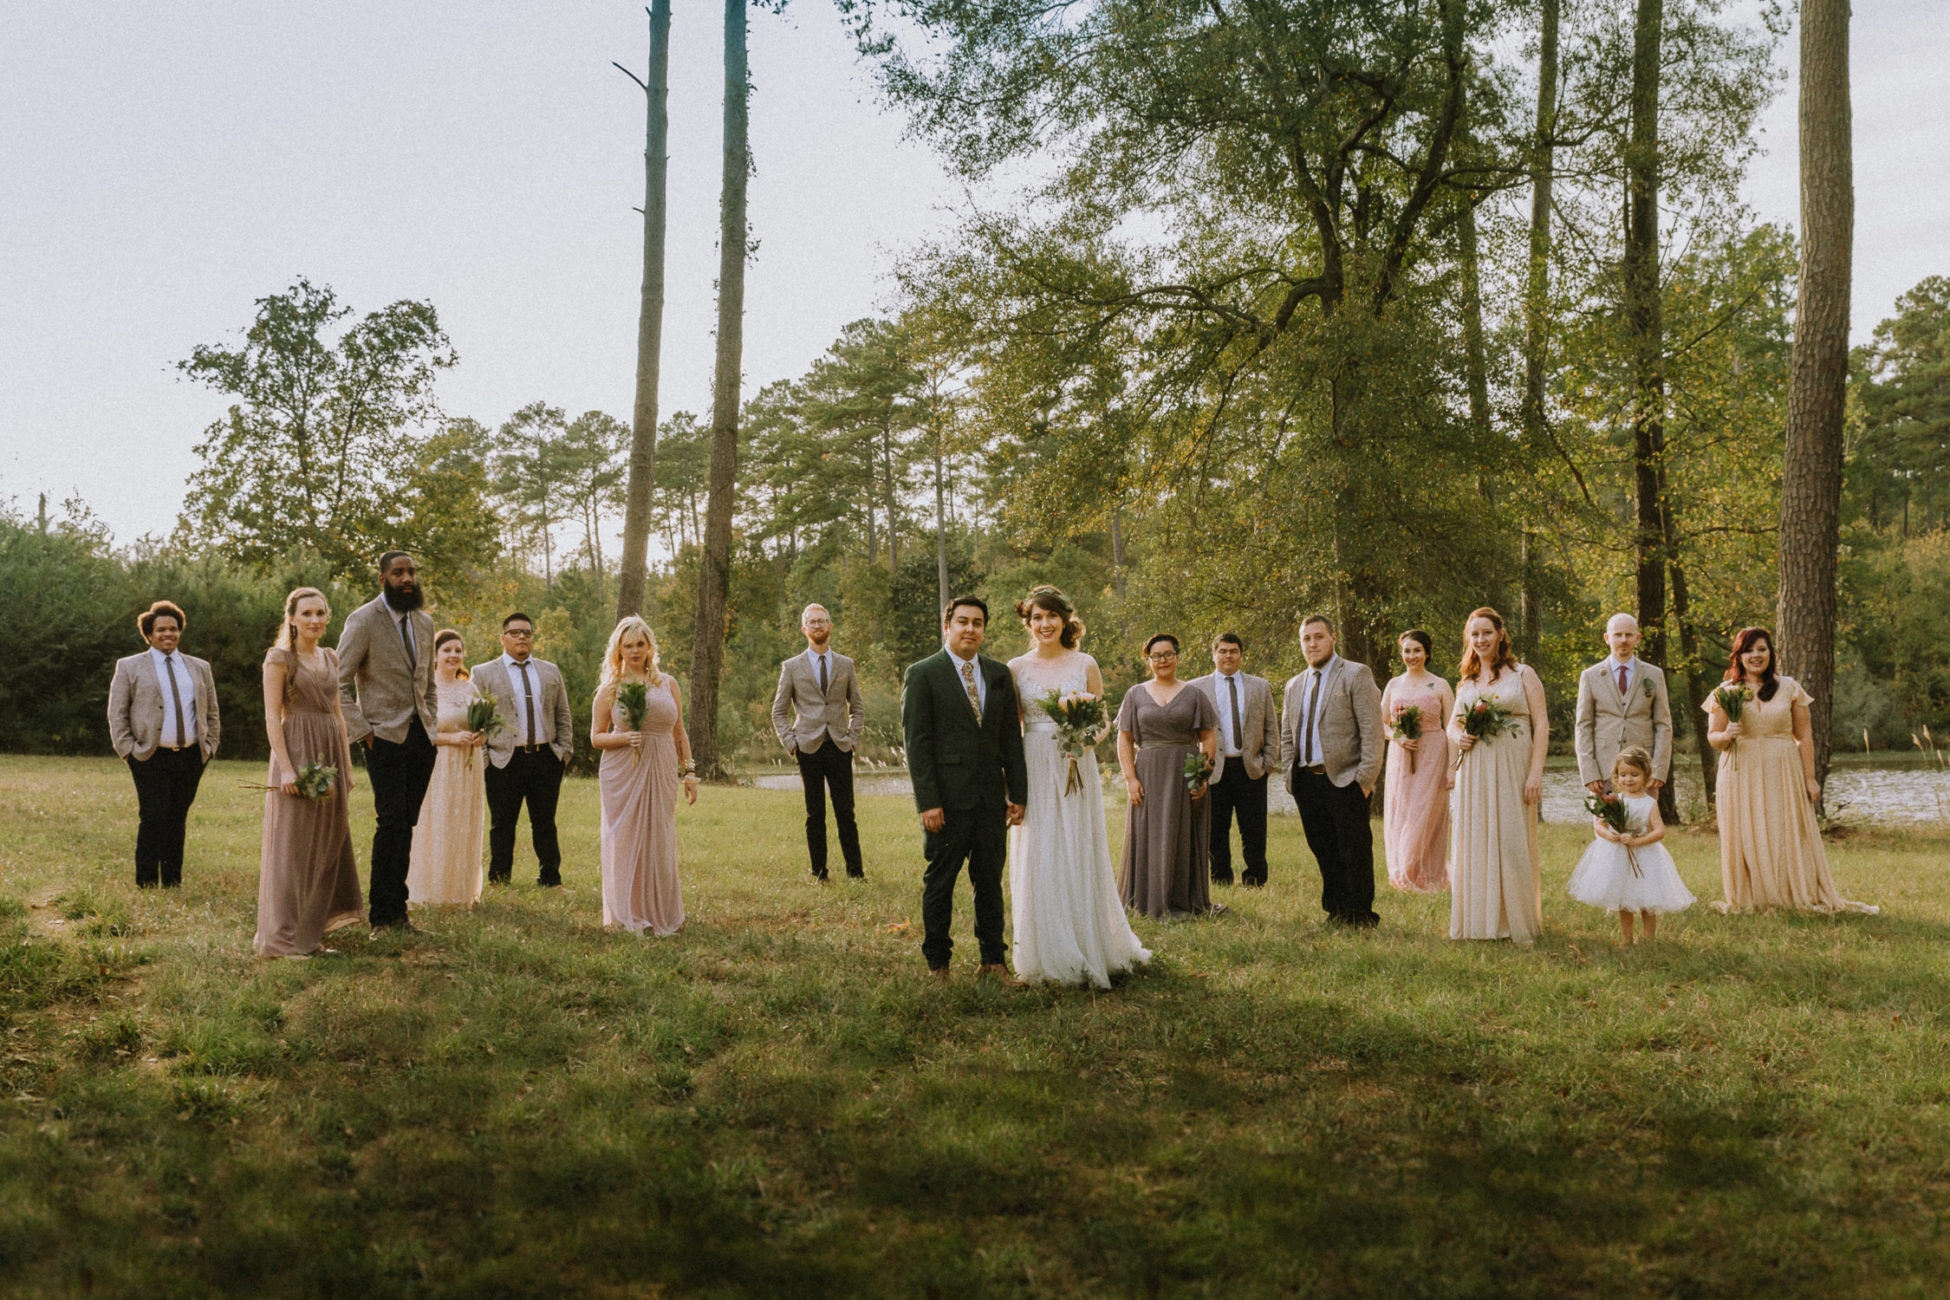 Rasberry Green wedding party in Soso, Mississippi